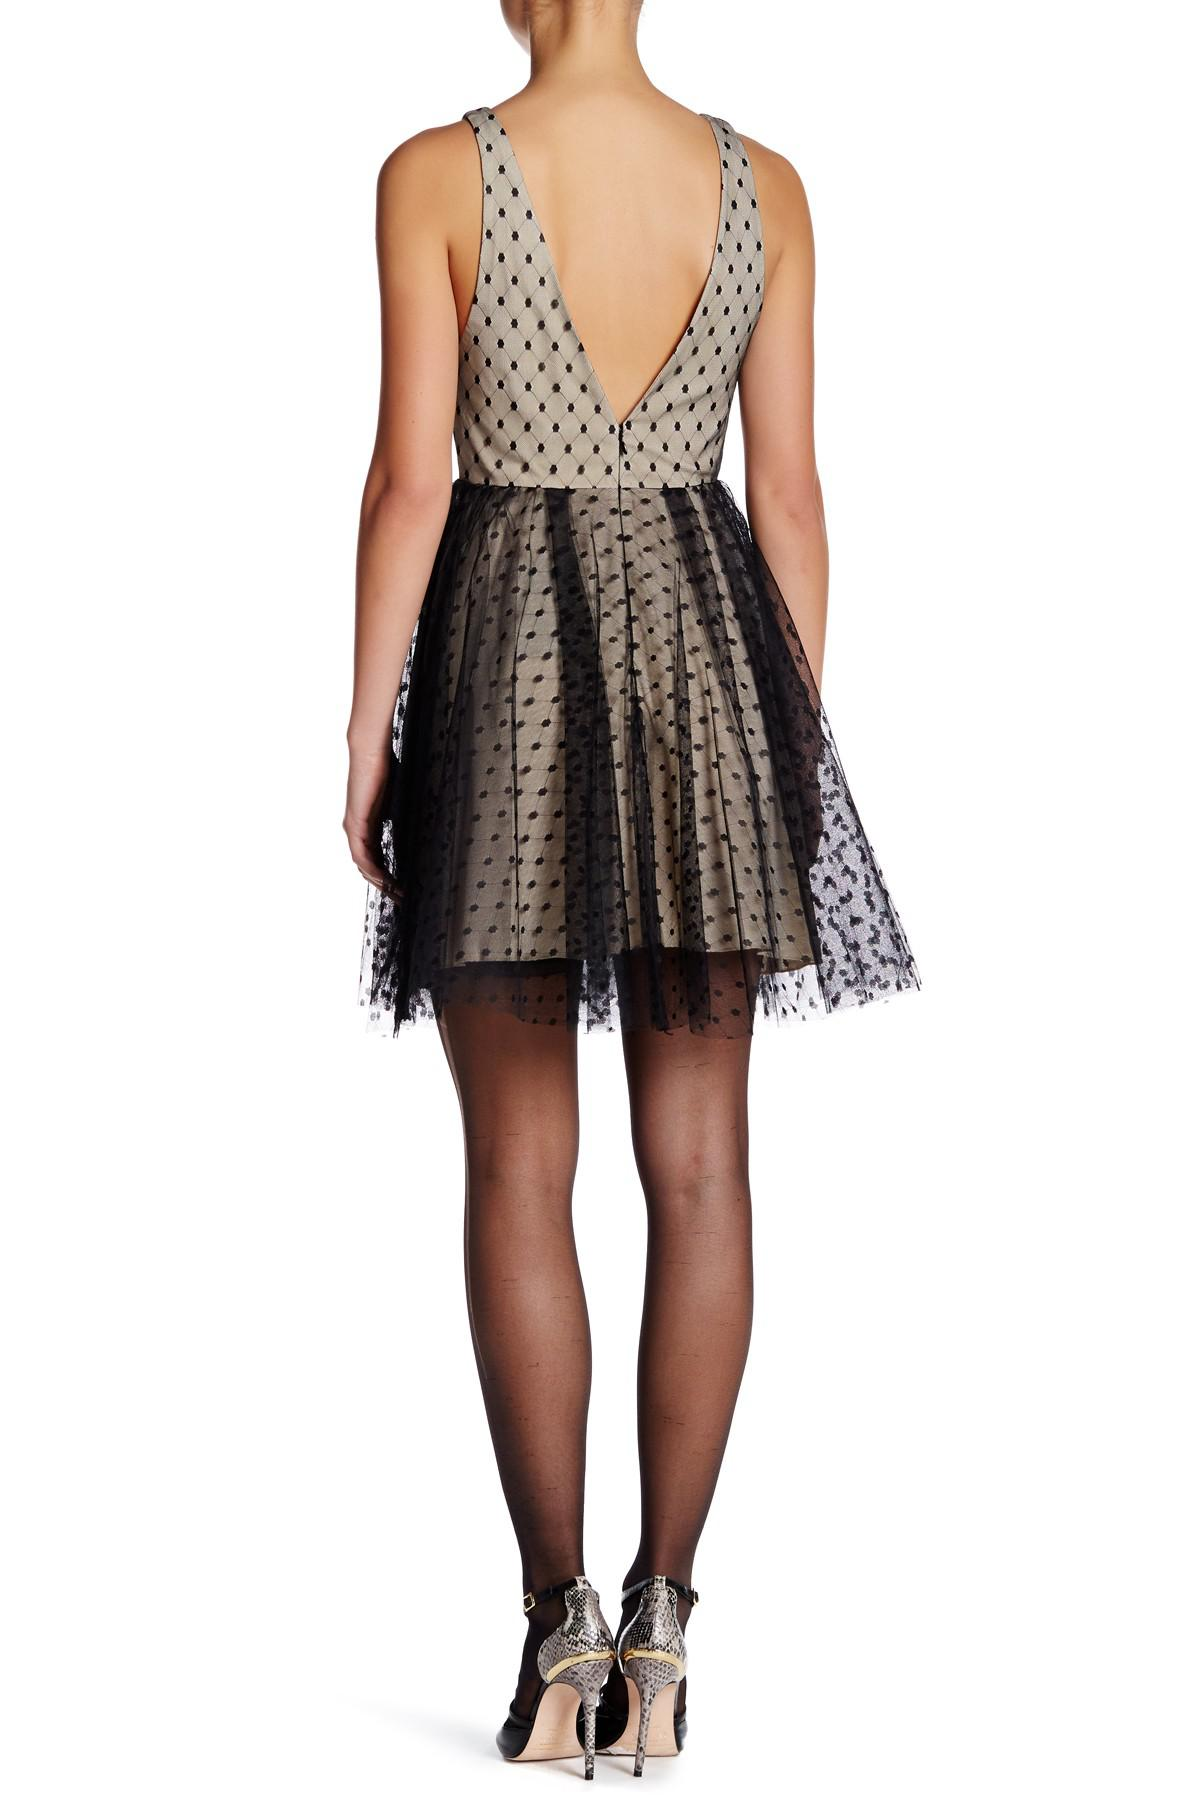 0d934c2c4f0 Gallery. Previously sold at  Nordstrom Rack · Women s Black Cocktail Dresses  Women s Black Lace ...